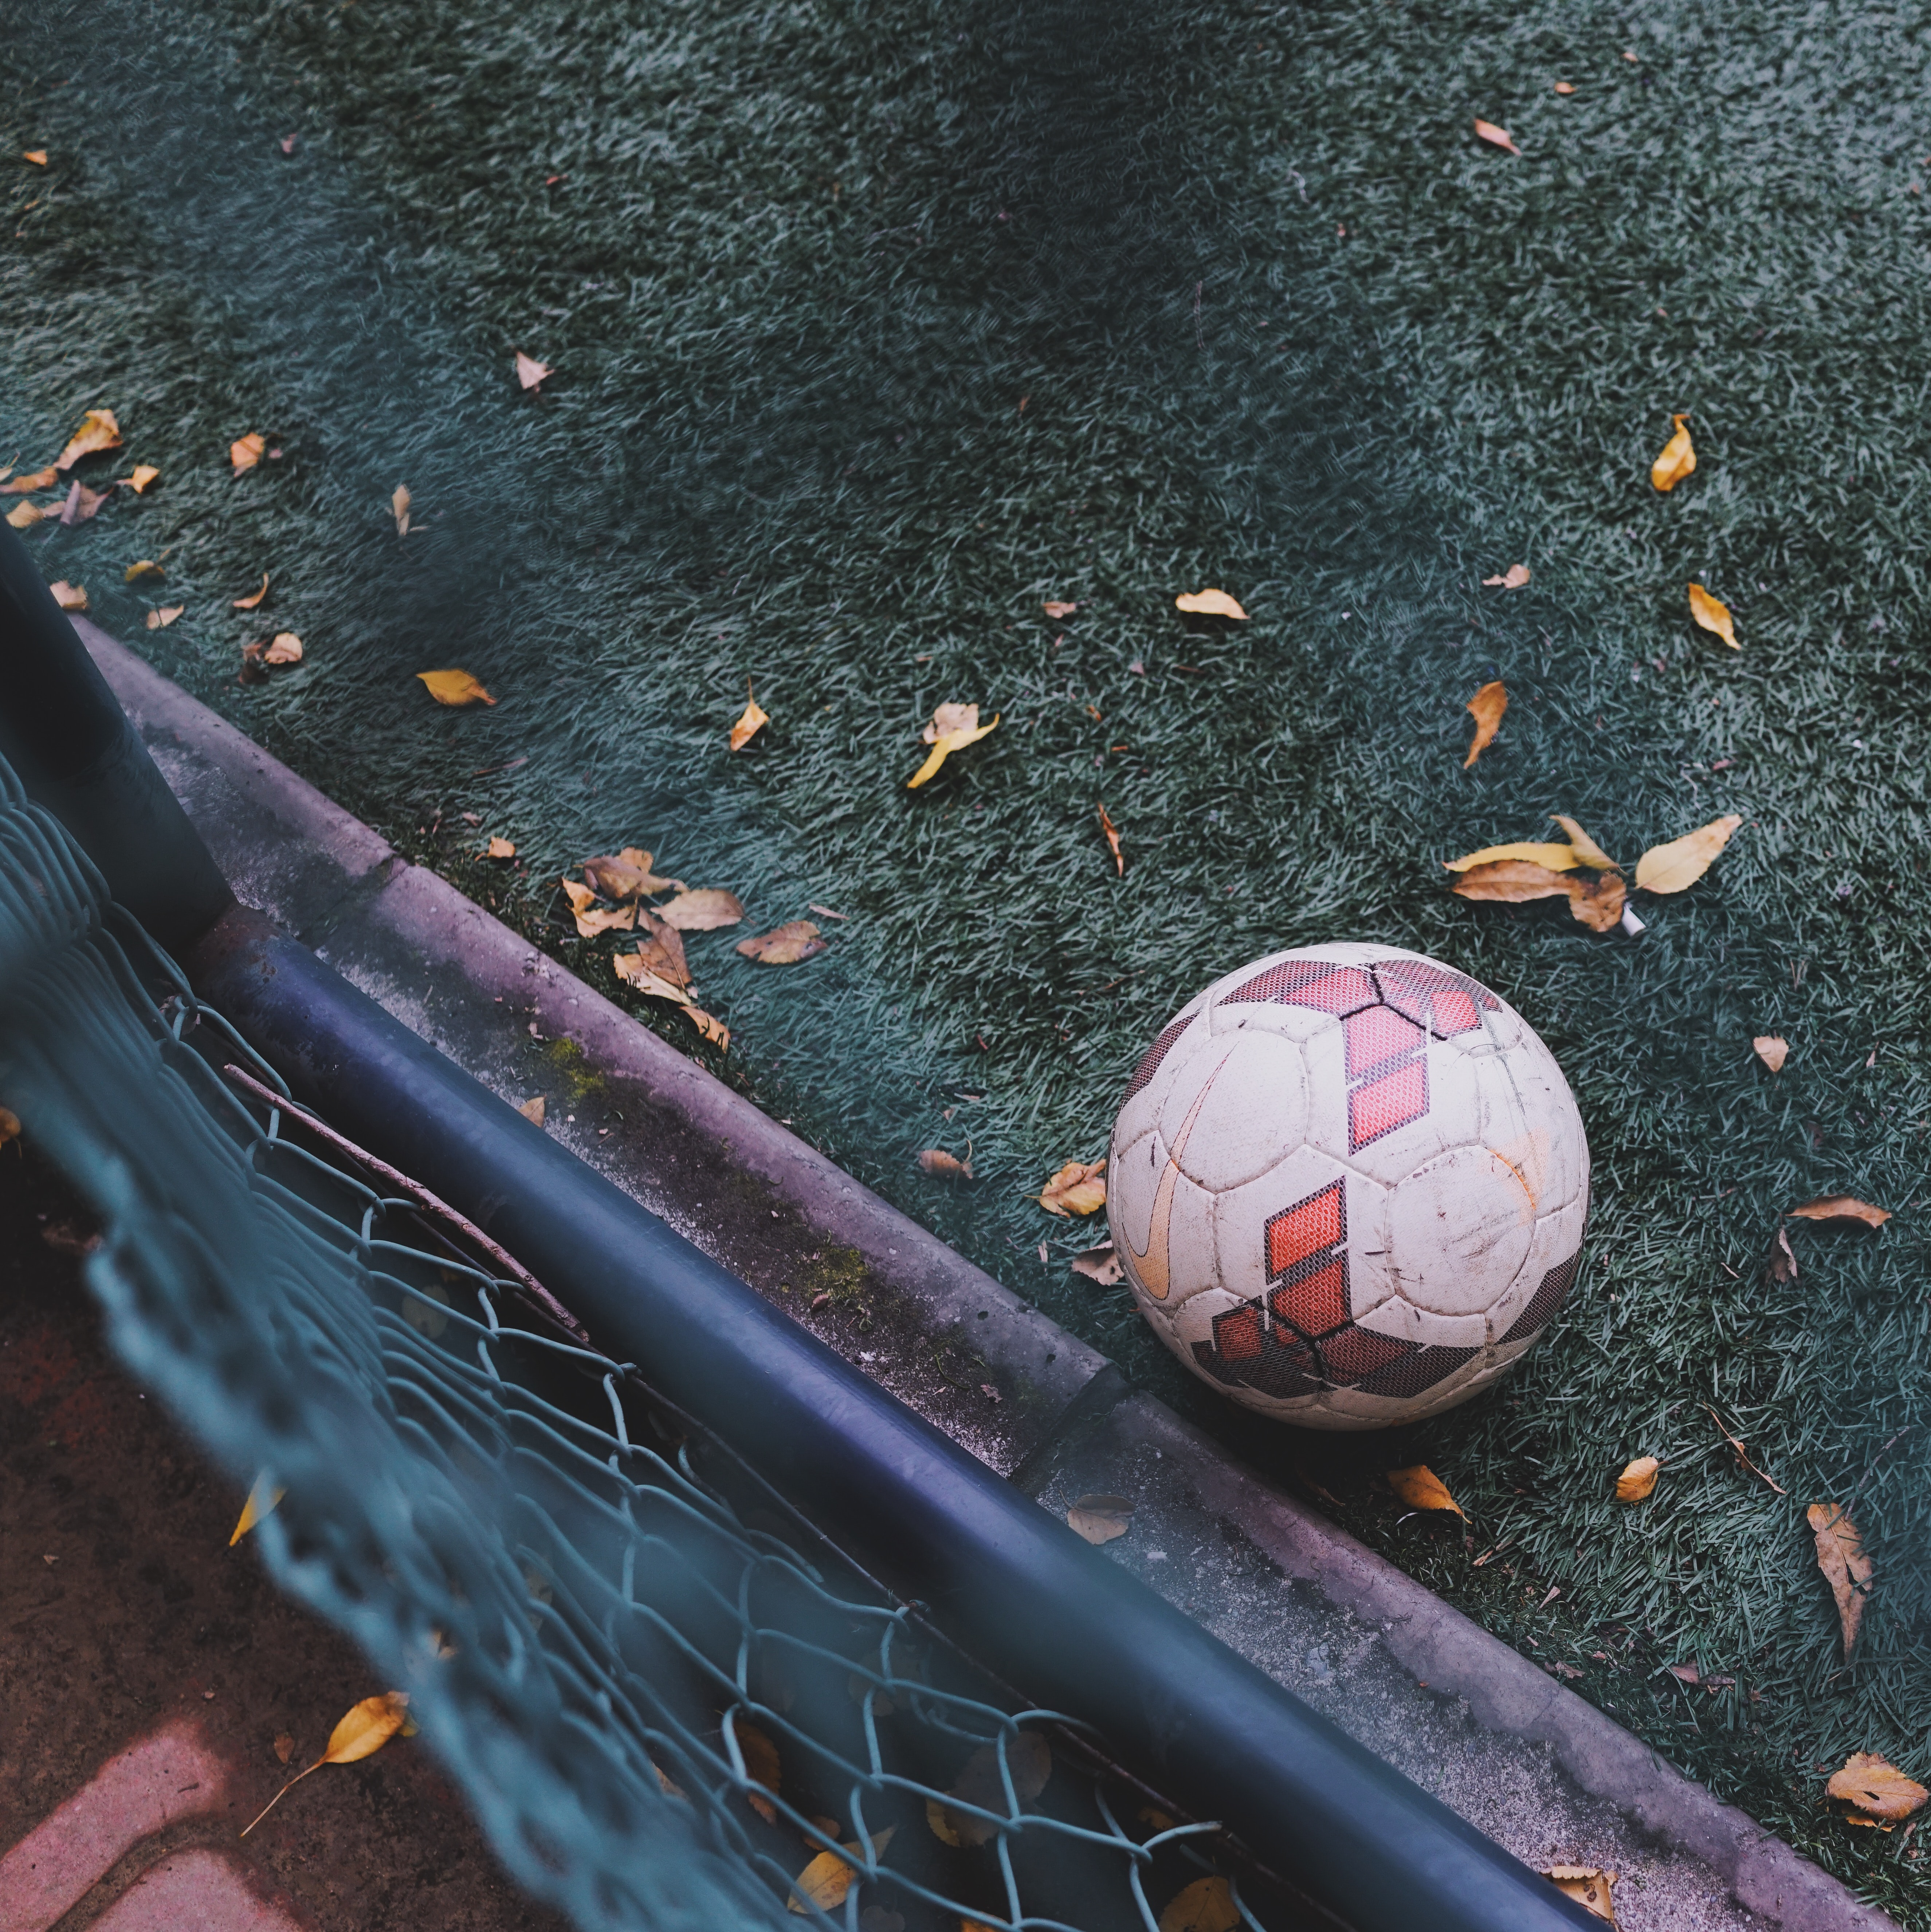 View over the fence on the soccer ball sitting on a green turf pitch